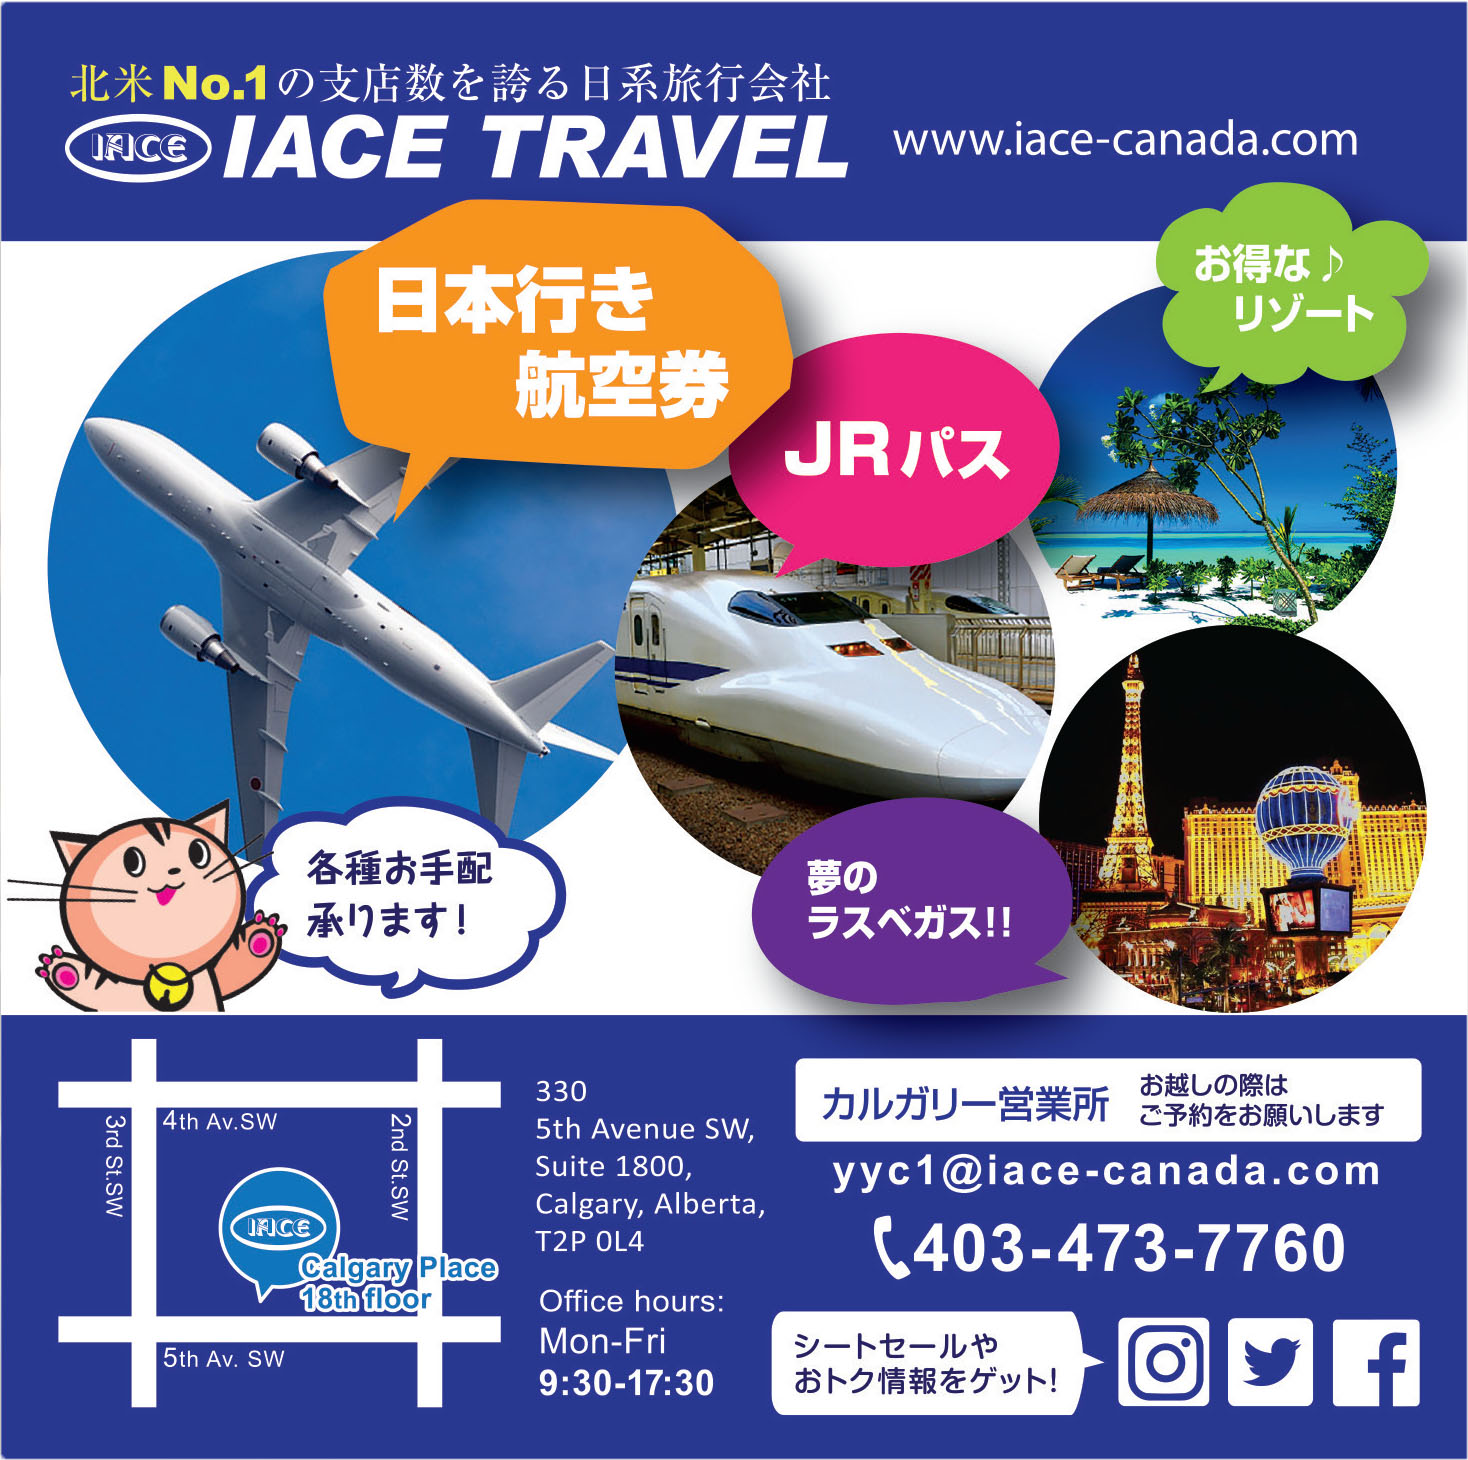 IACE Travel Calgary